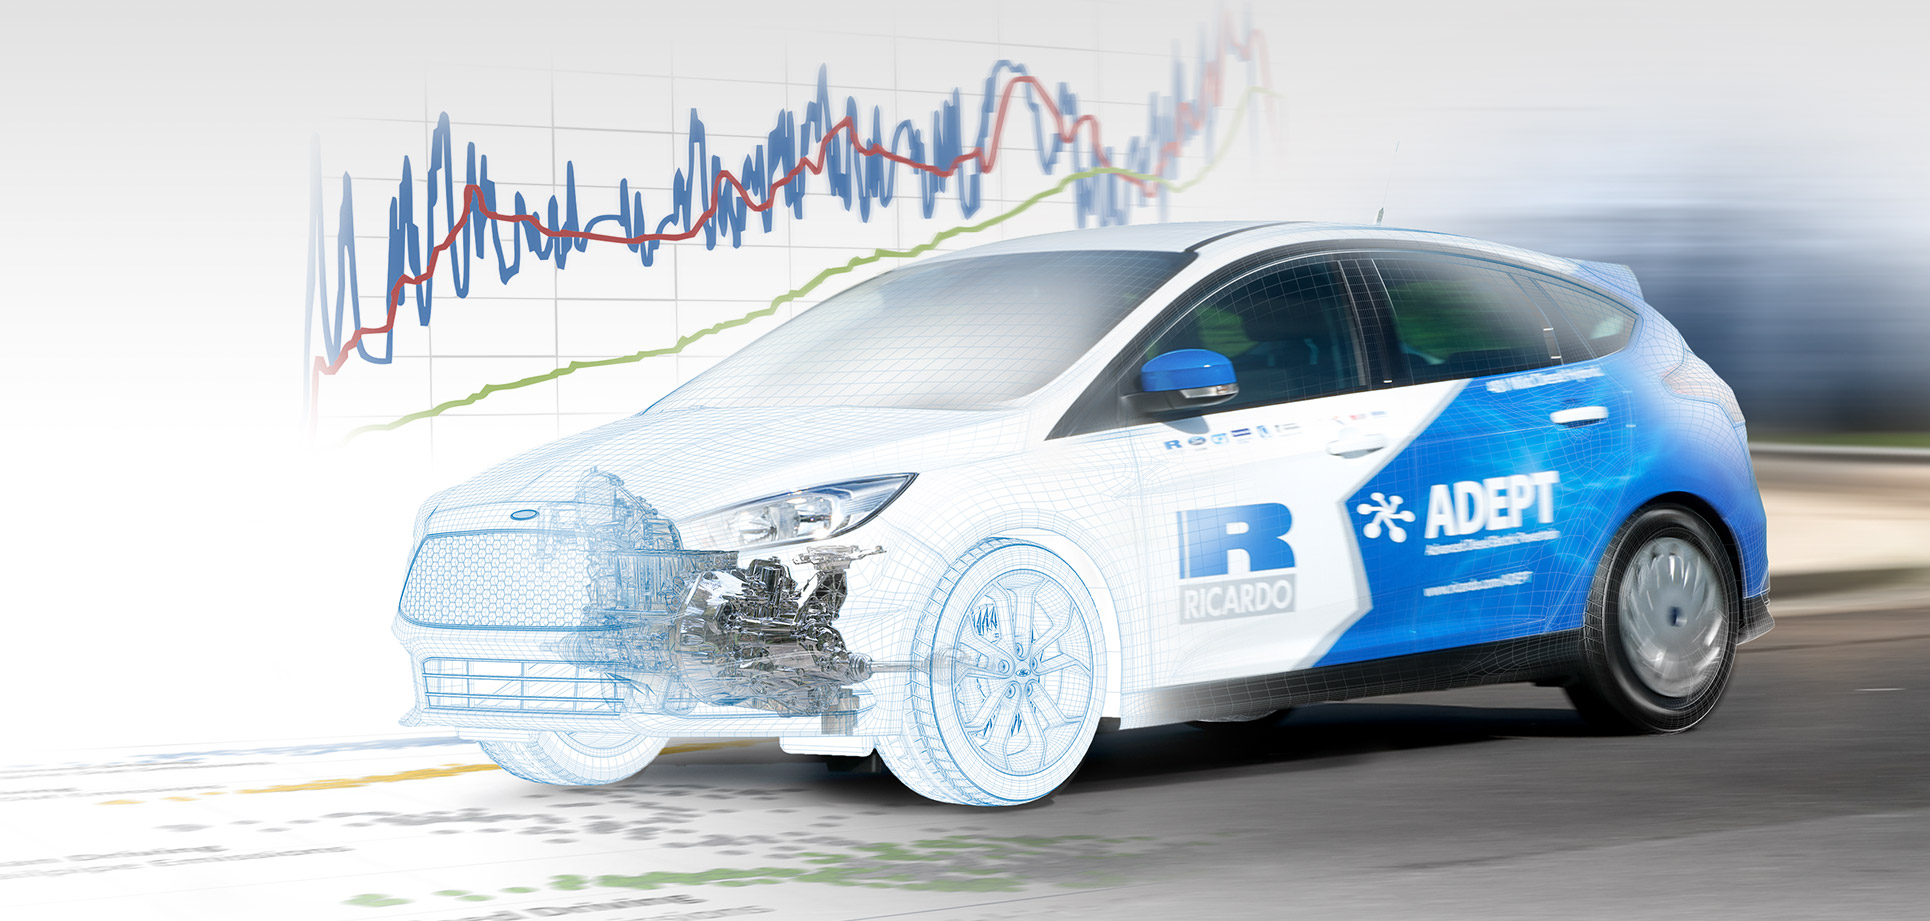 Ricardo Software hosts 2 day training event relating to xEV vehicle optimisation